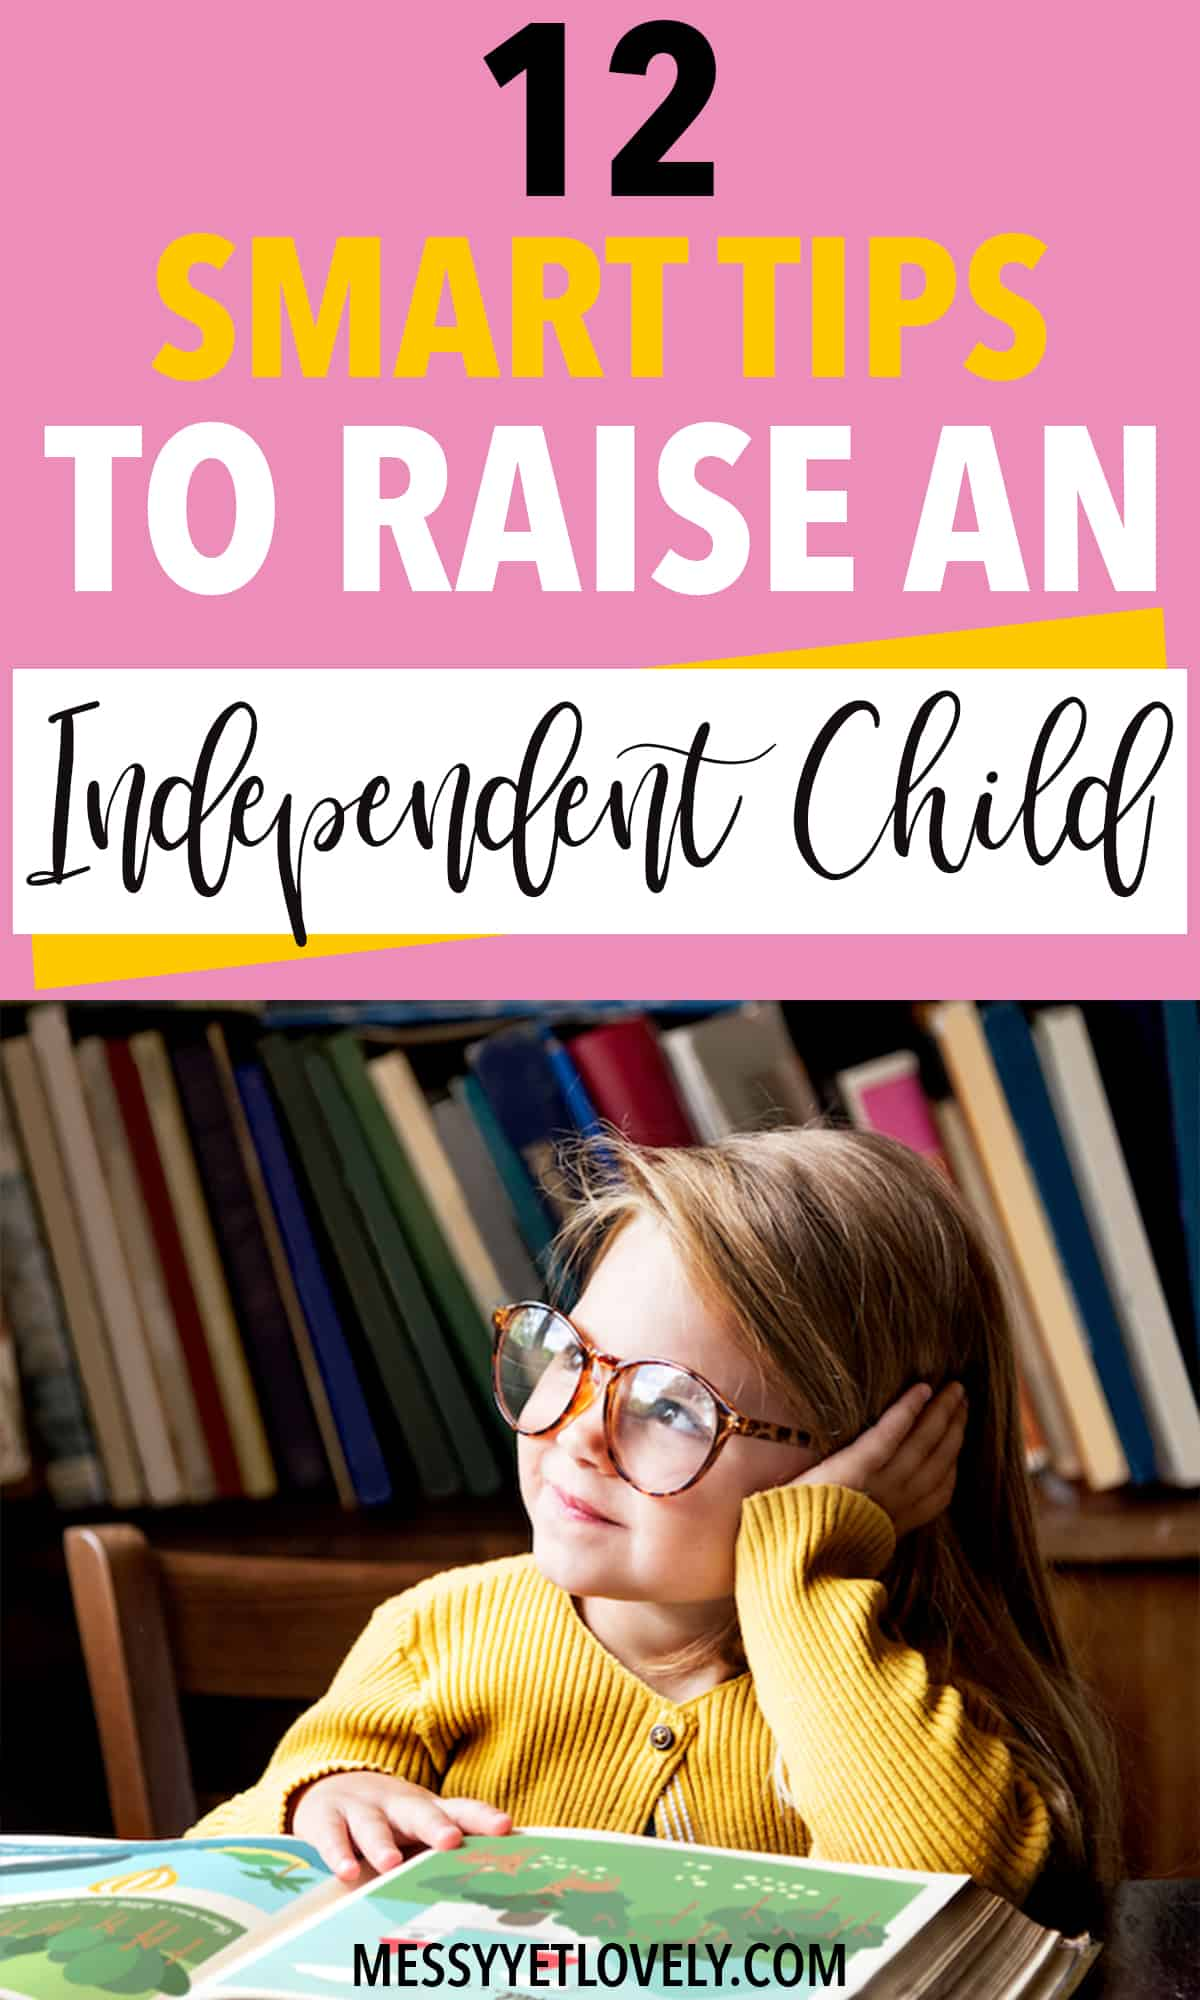 Tips for parents on how to raise independent children. #parenting #parentingtips